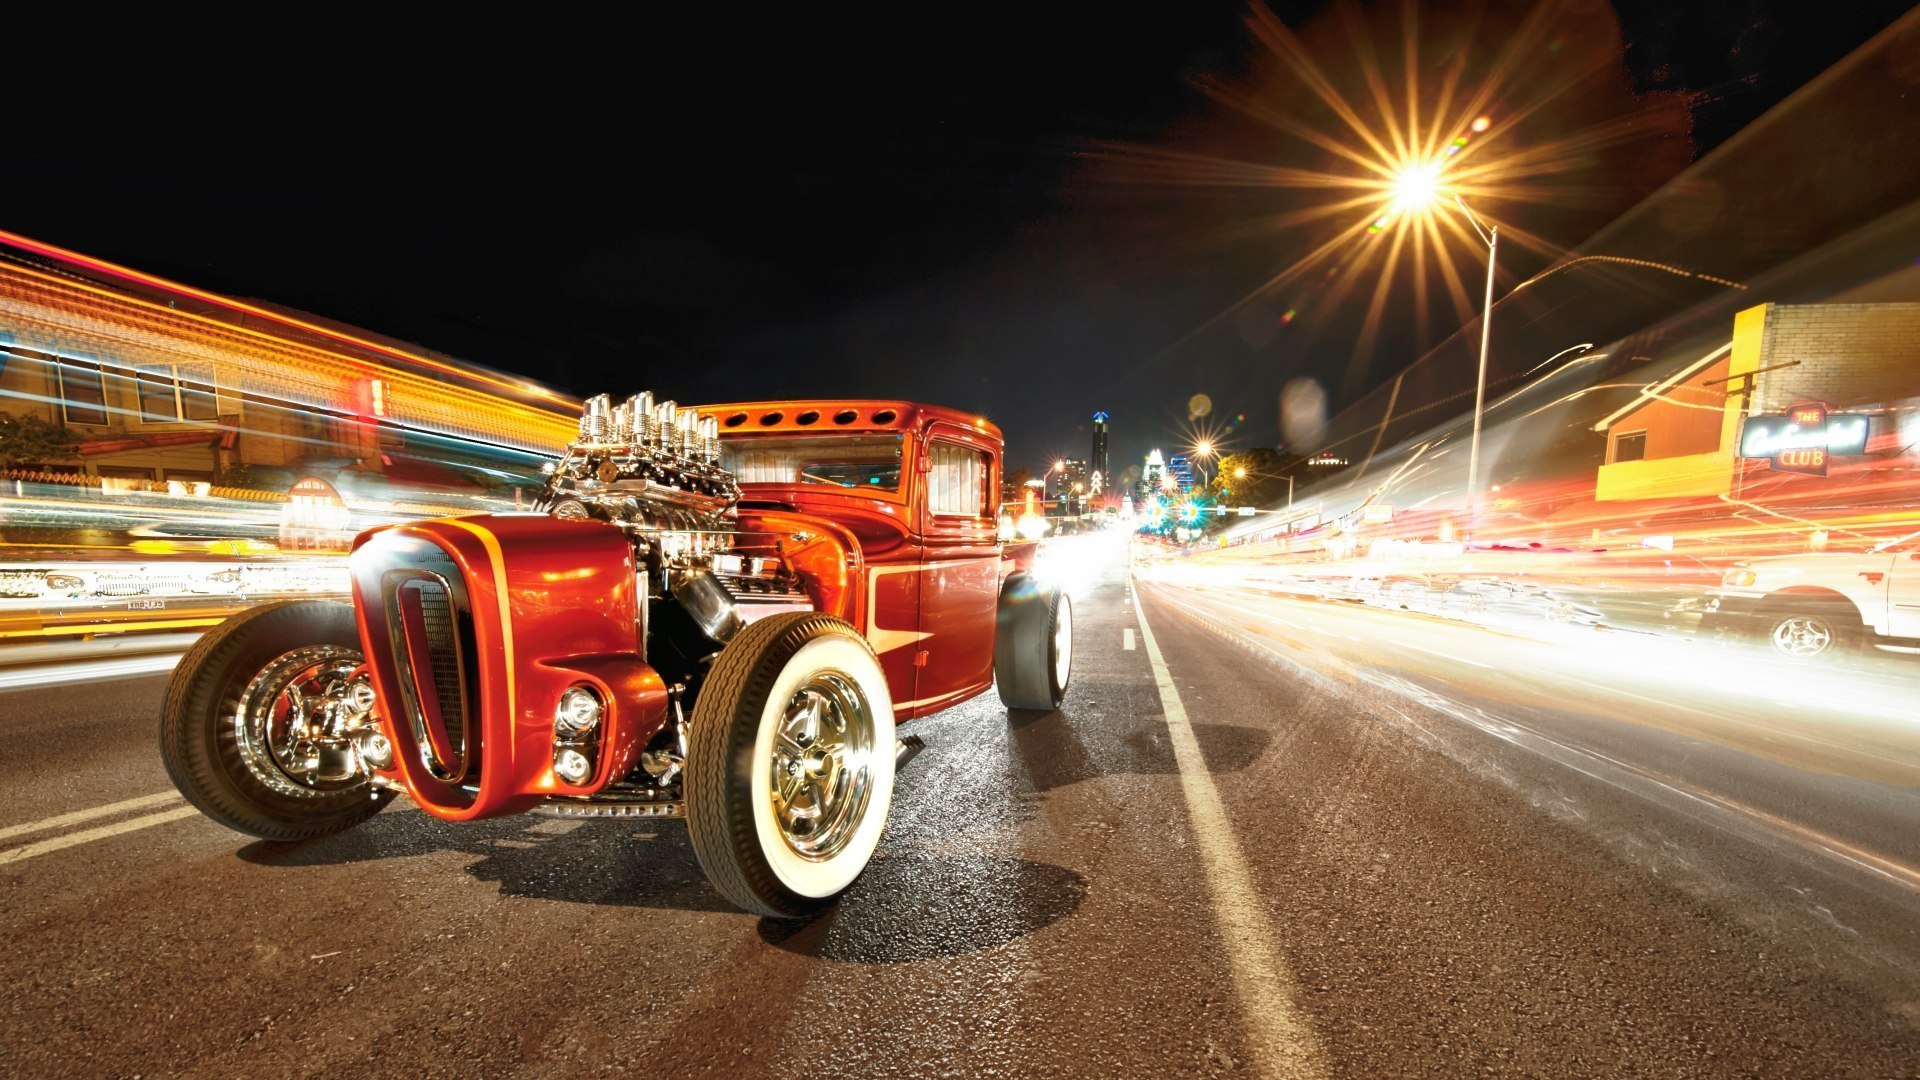 hot rod wallpaper hd - photo #25